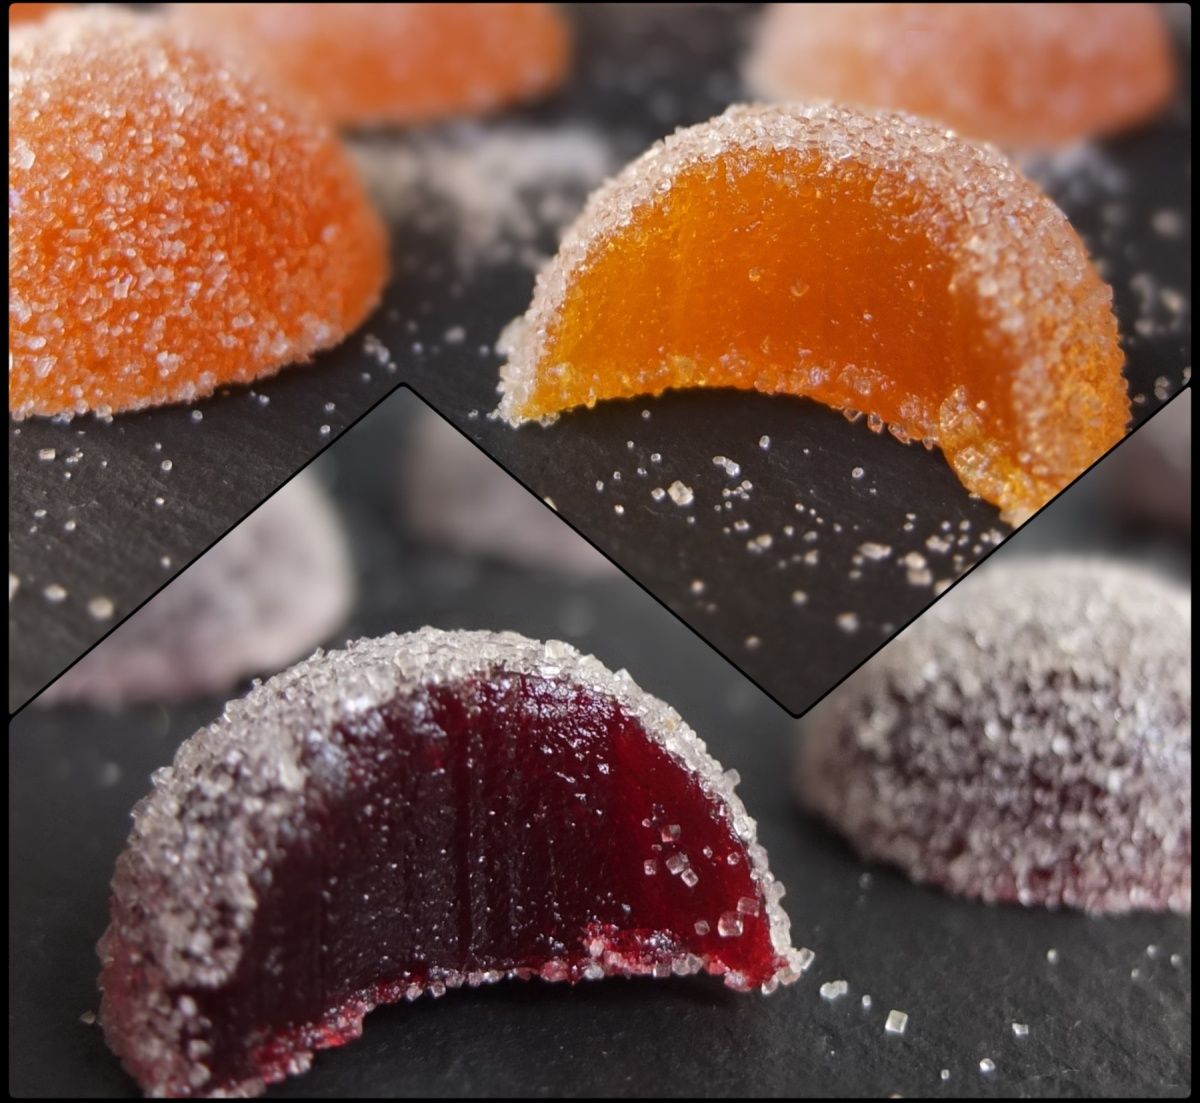 Pâtes de fruits, French fruit jellies recipe!  Raspberry or passion fruit ... naturally gluten-free vegan sweets!